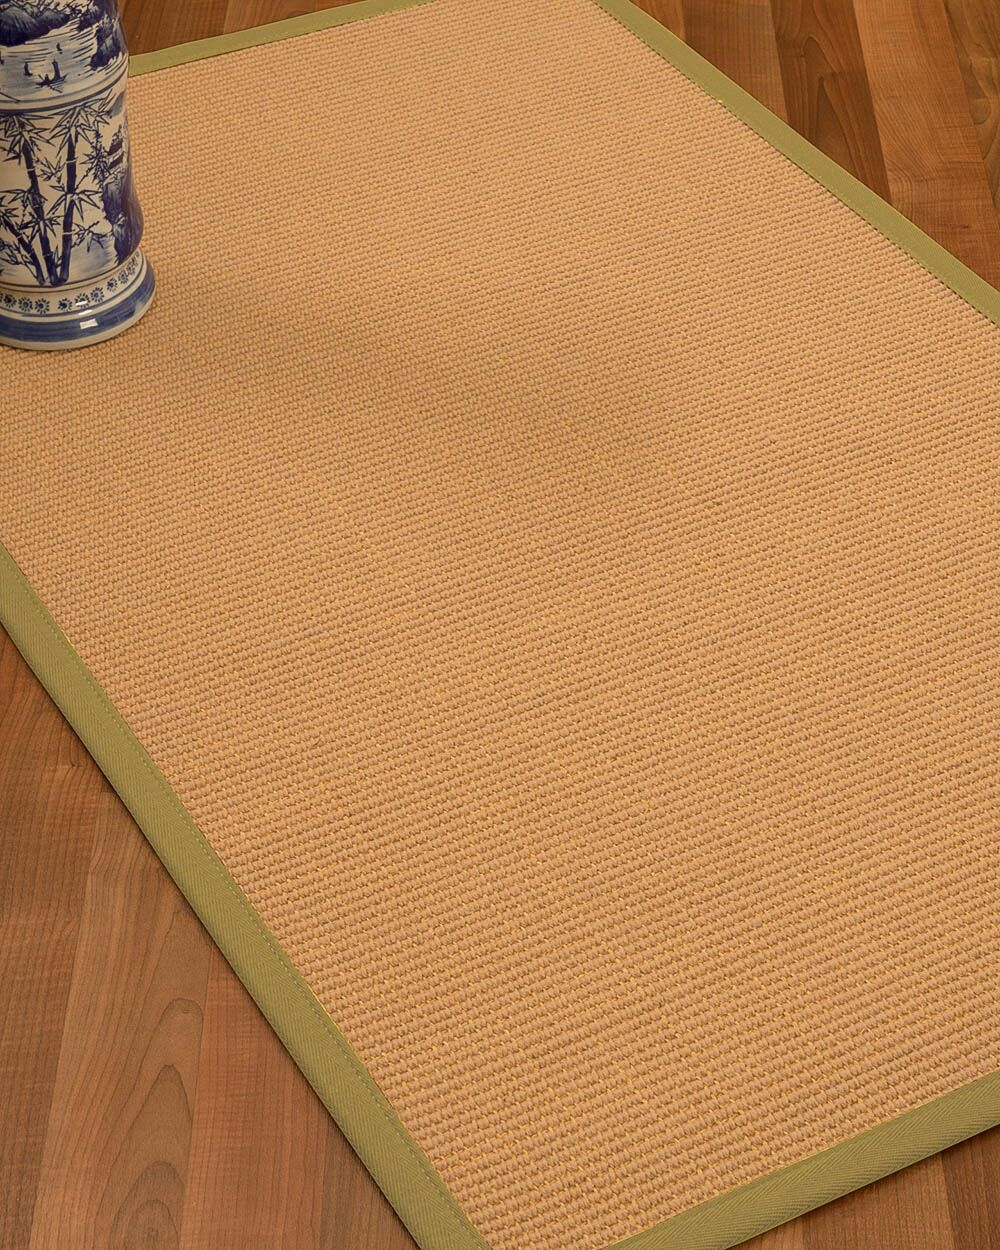 Lafayette Border Hand-Woven Wool Beige/Natural Area Rug Rug Size: Rectangle 4' x 6', Rug Pad Included: Yes